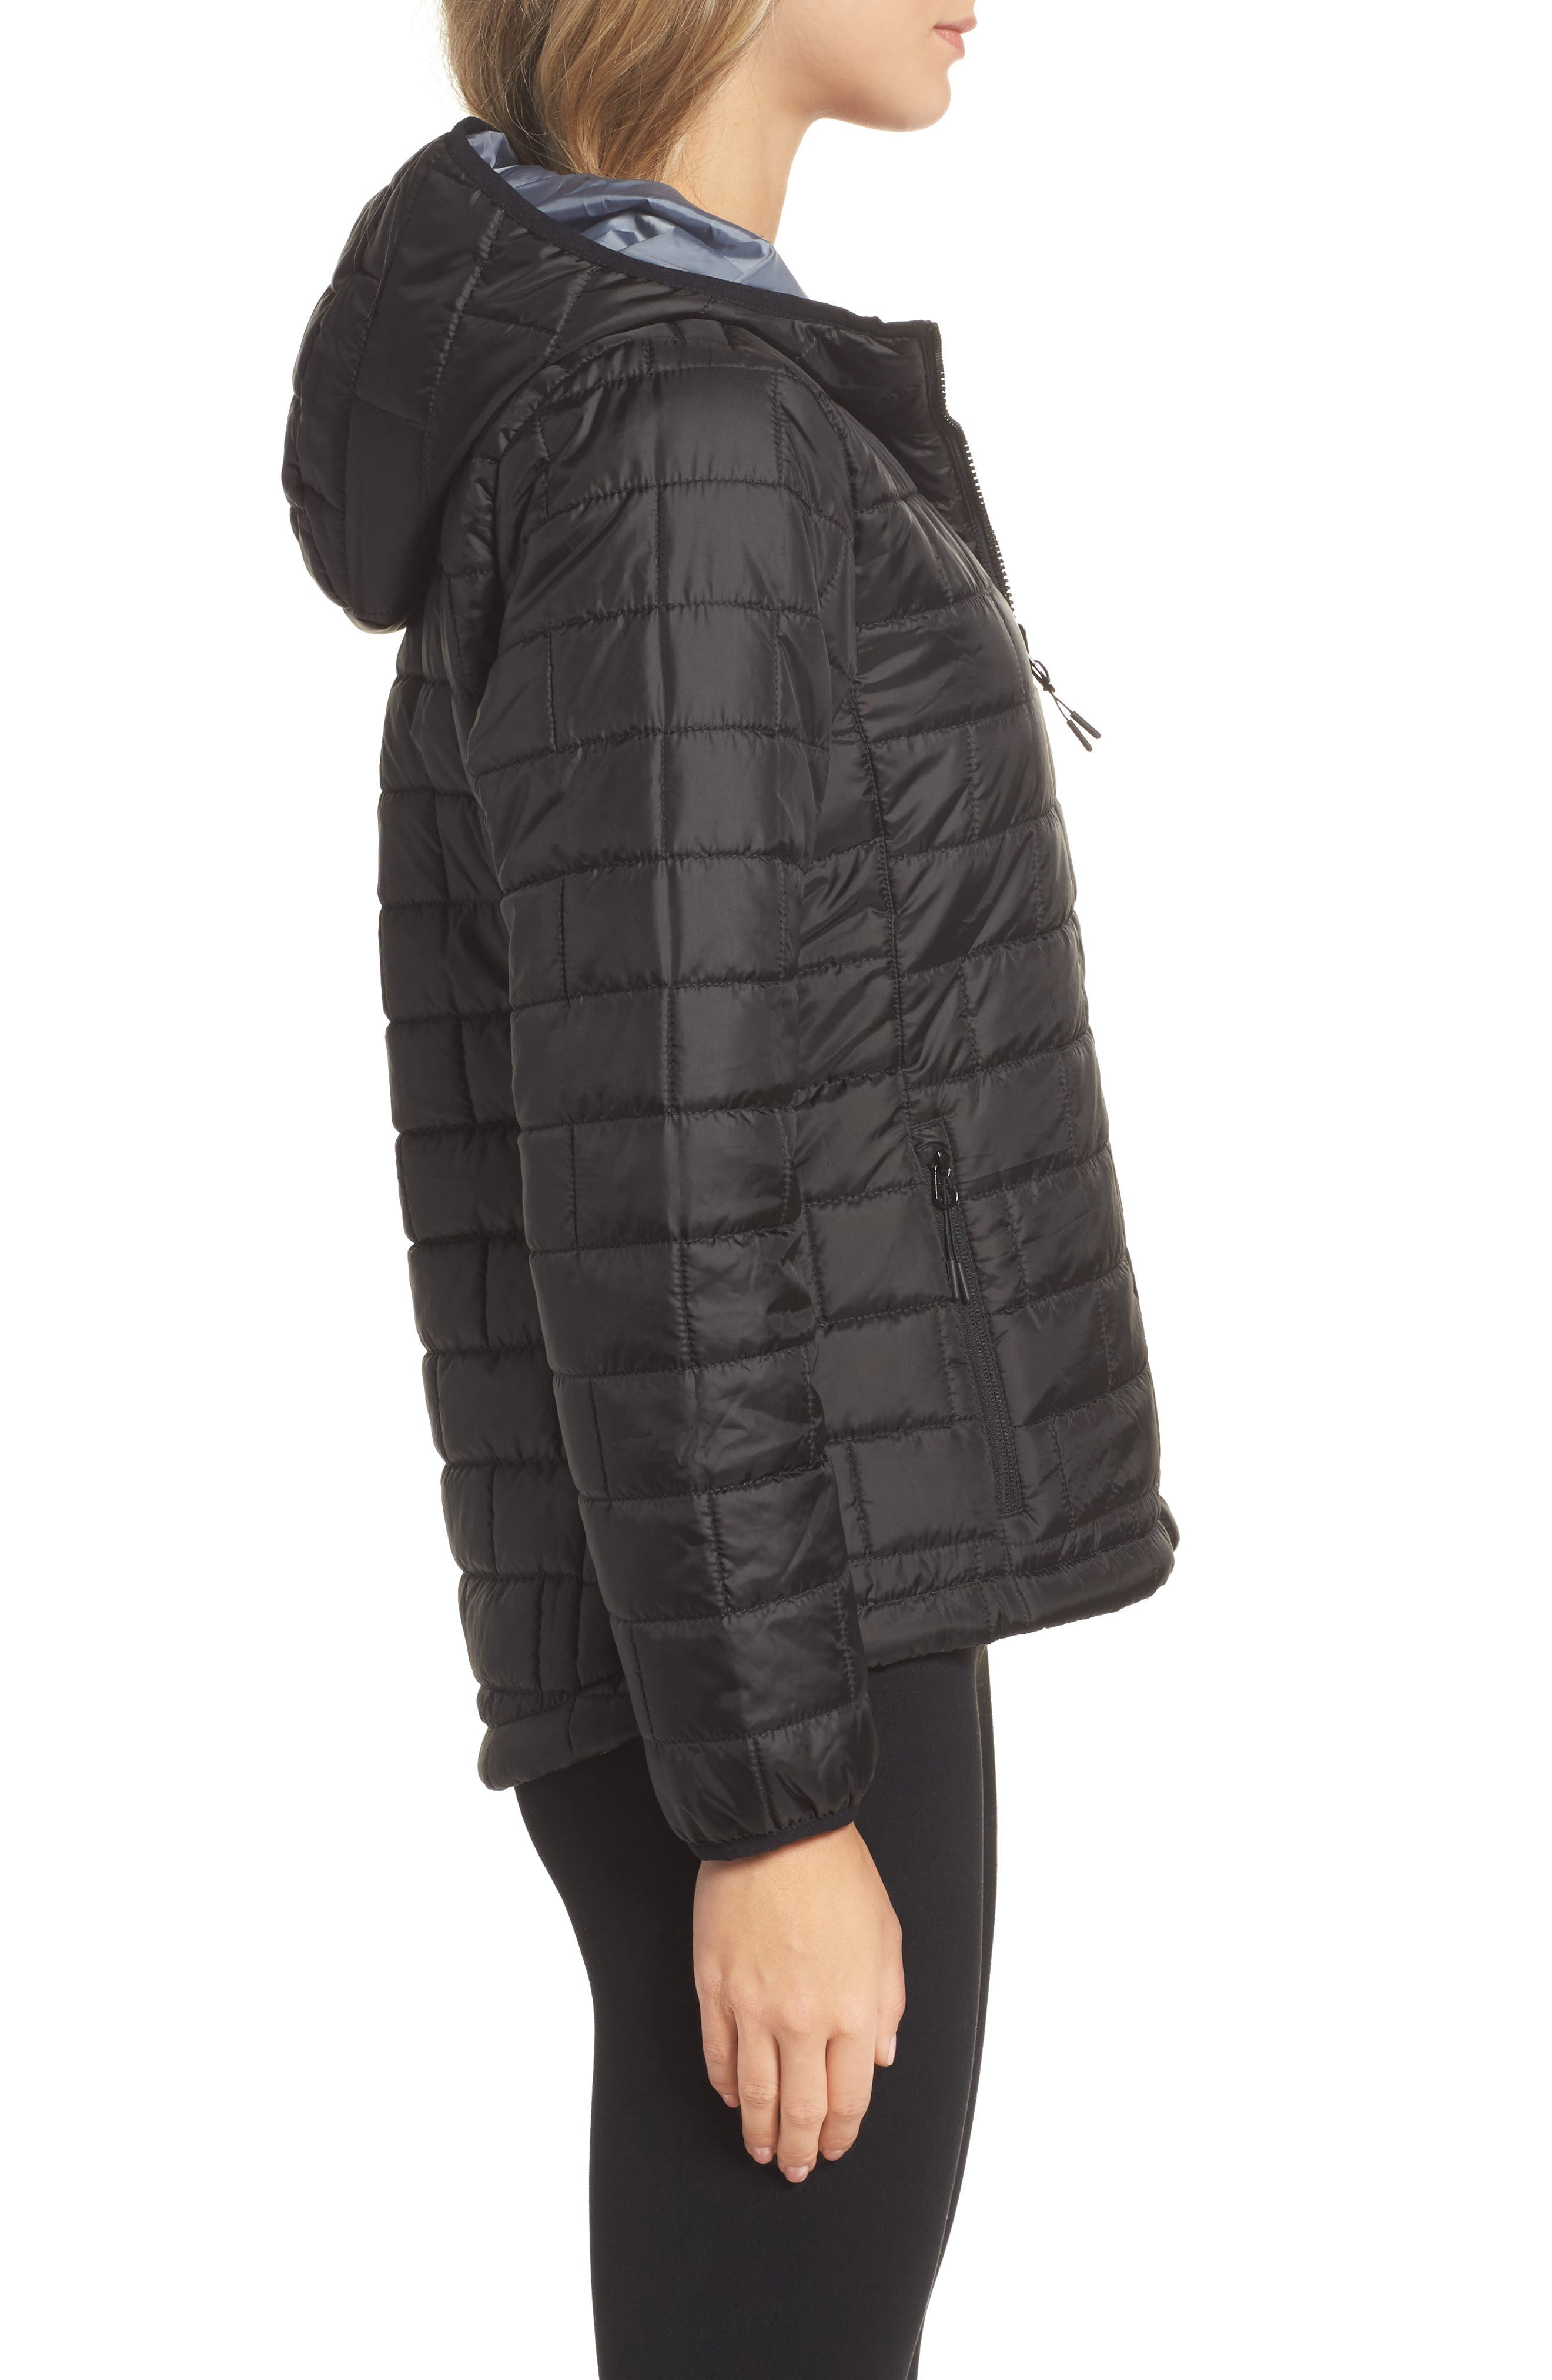 Highland Reversible Water-Resistant & Windproof Quilted Puffer Jacket,                             Alternate thumbnail 4, color,                             Black/ Gunmetal